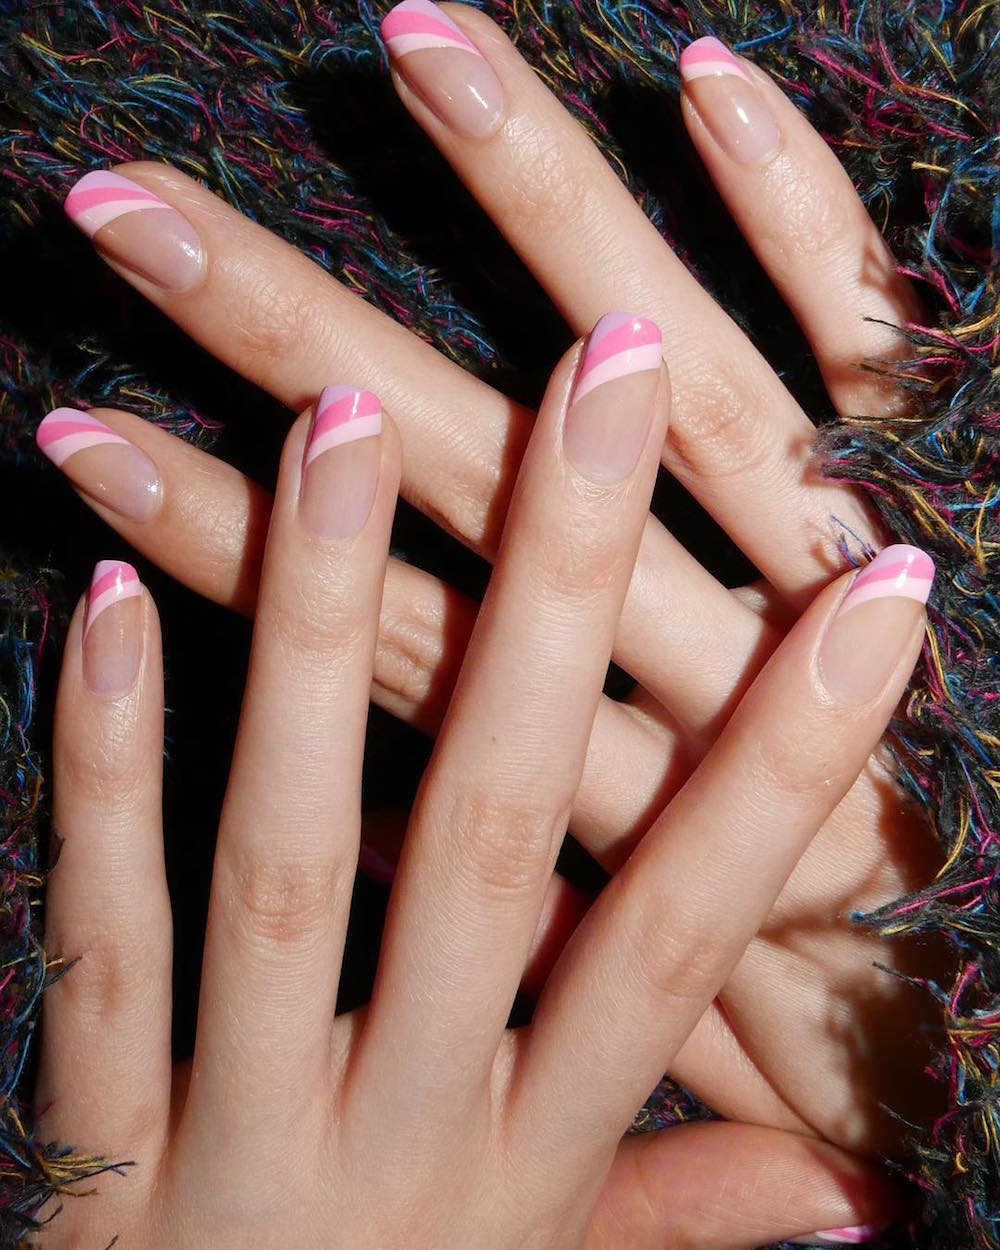 20 Cool Nail Art Designs to Heat Up Summer - 20 Cool Nail Art Designs To Heat Up Summer - TheFashionSpot